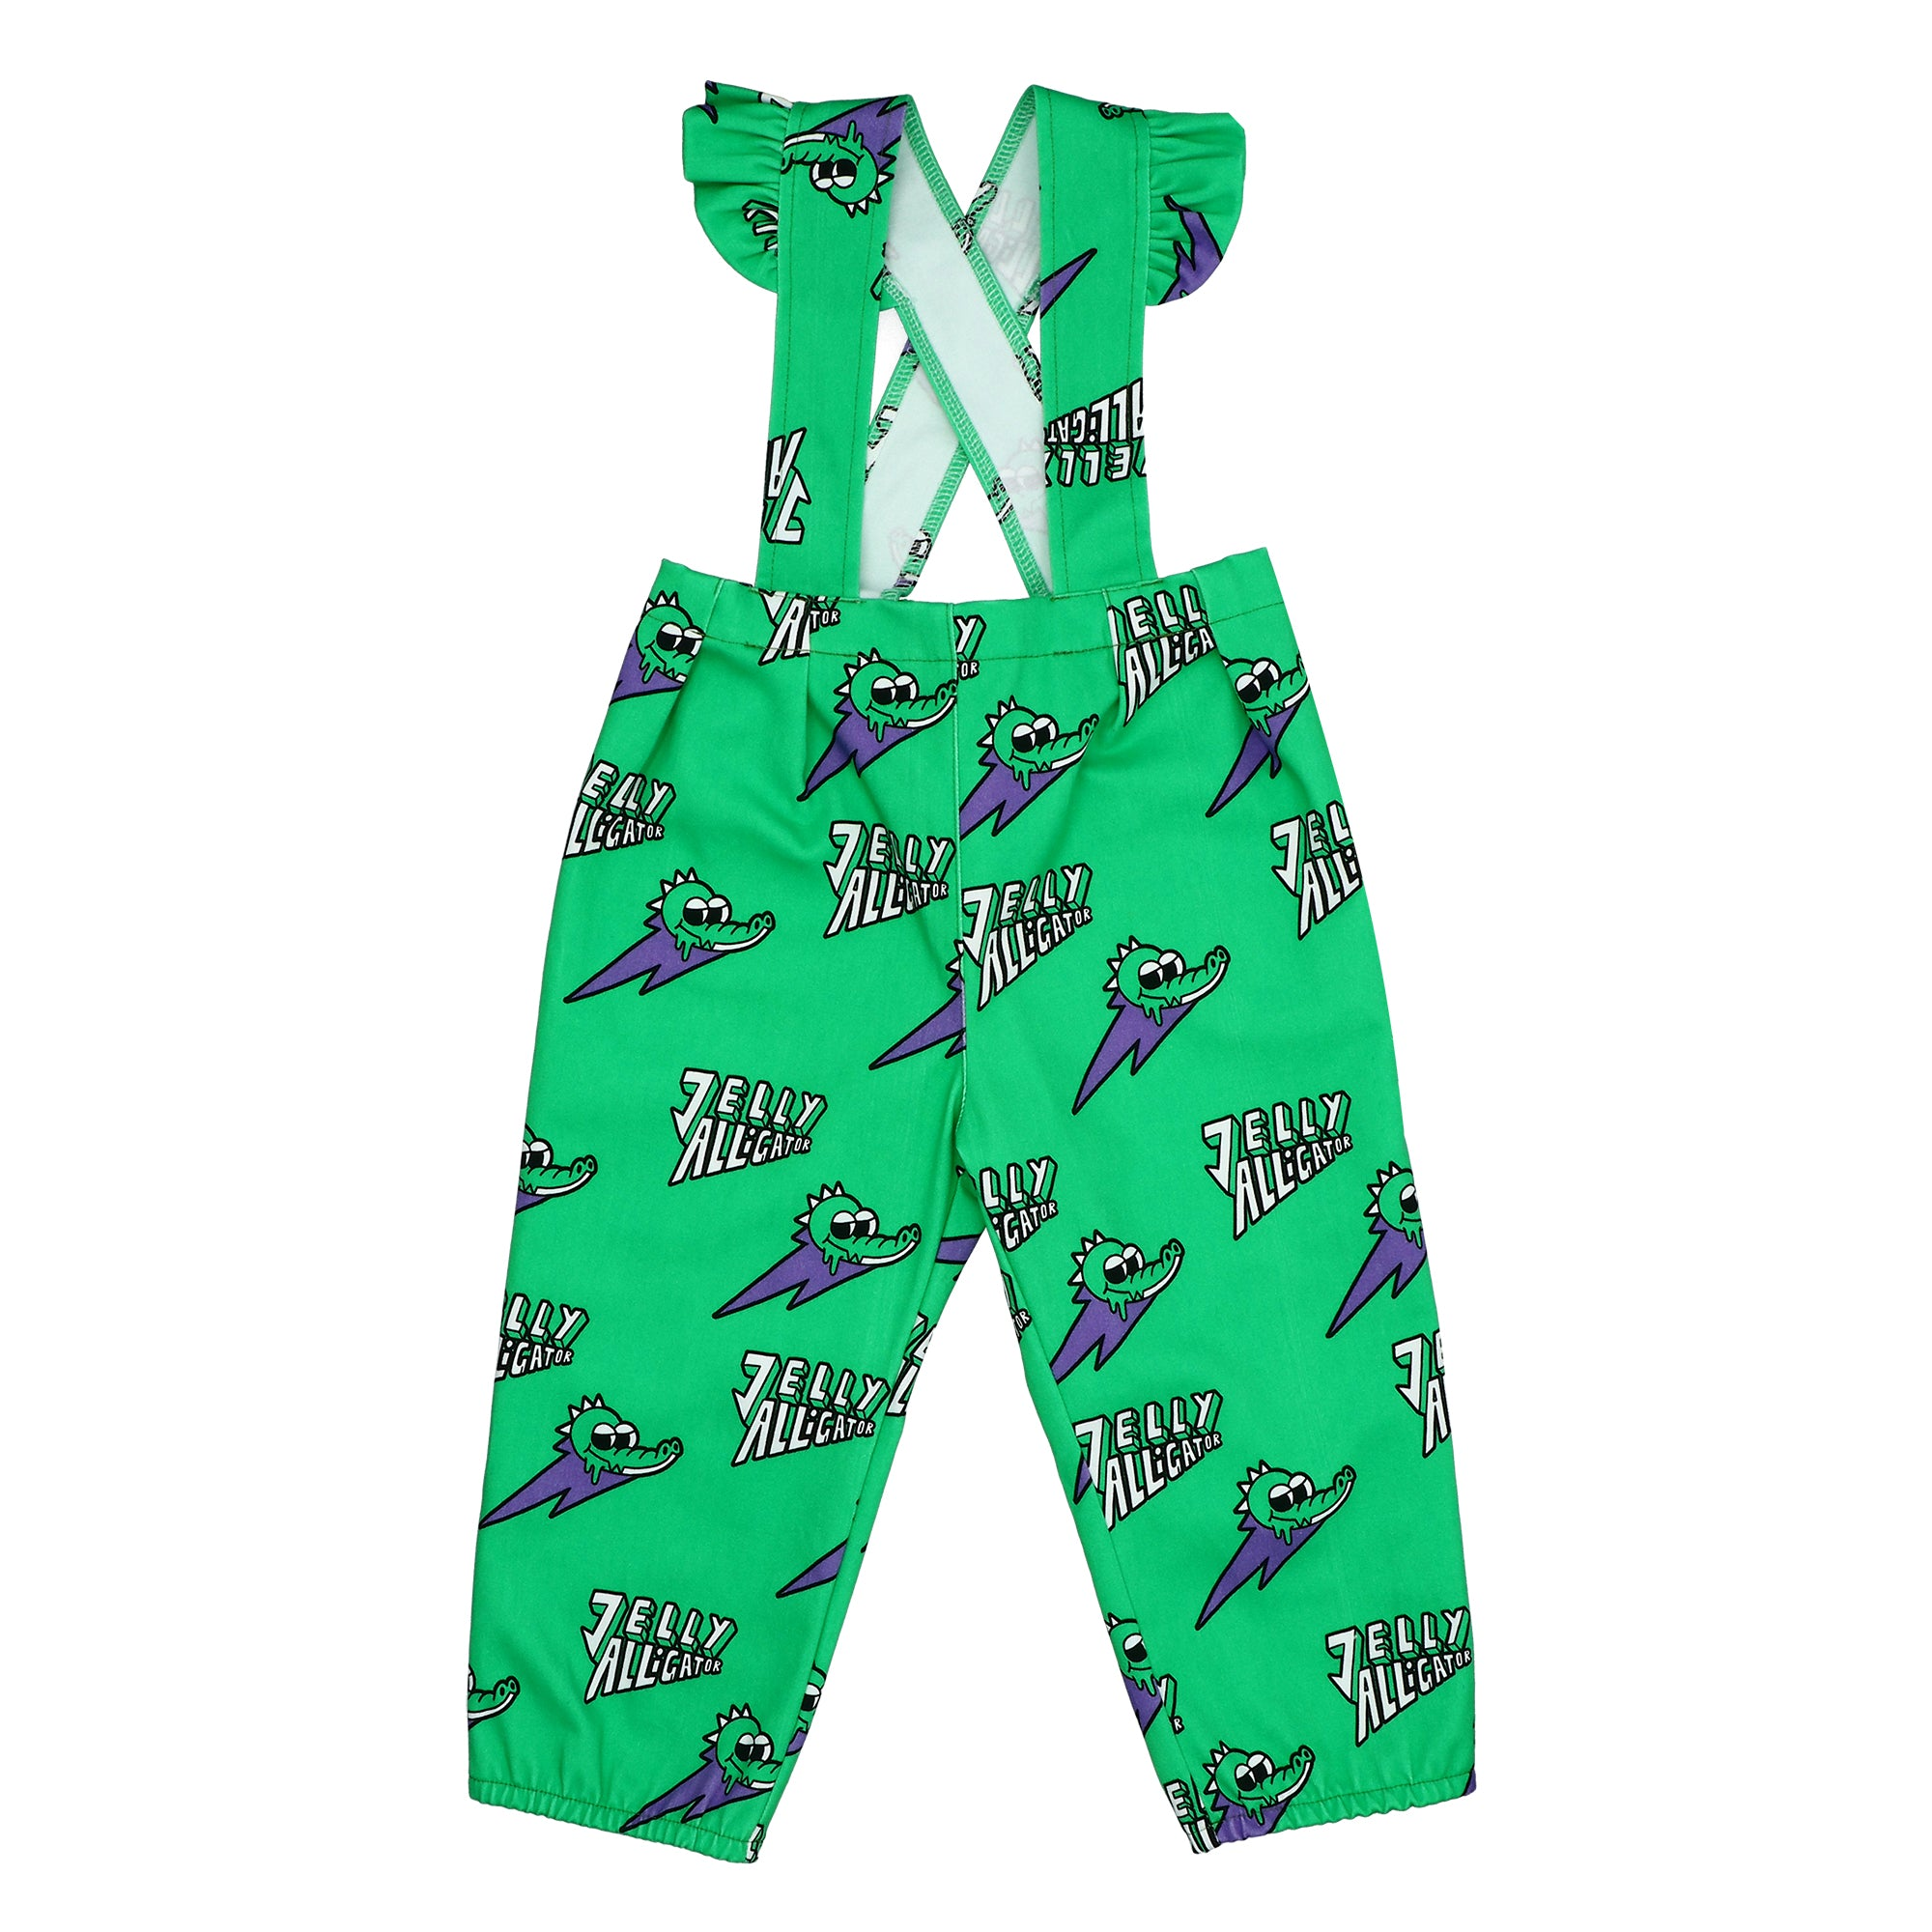 Jelly Alligator Green Dungarees